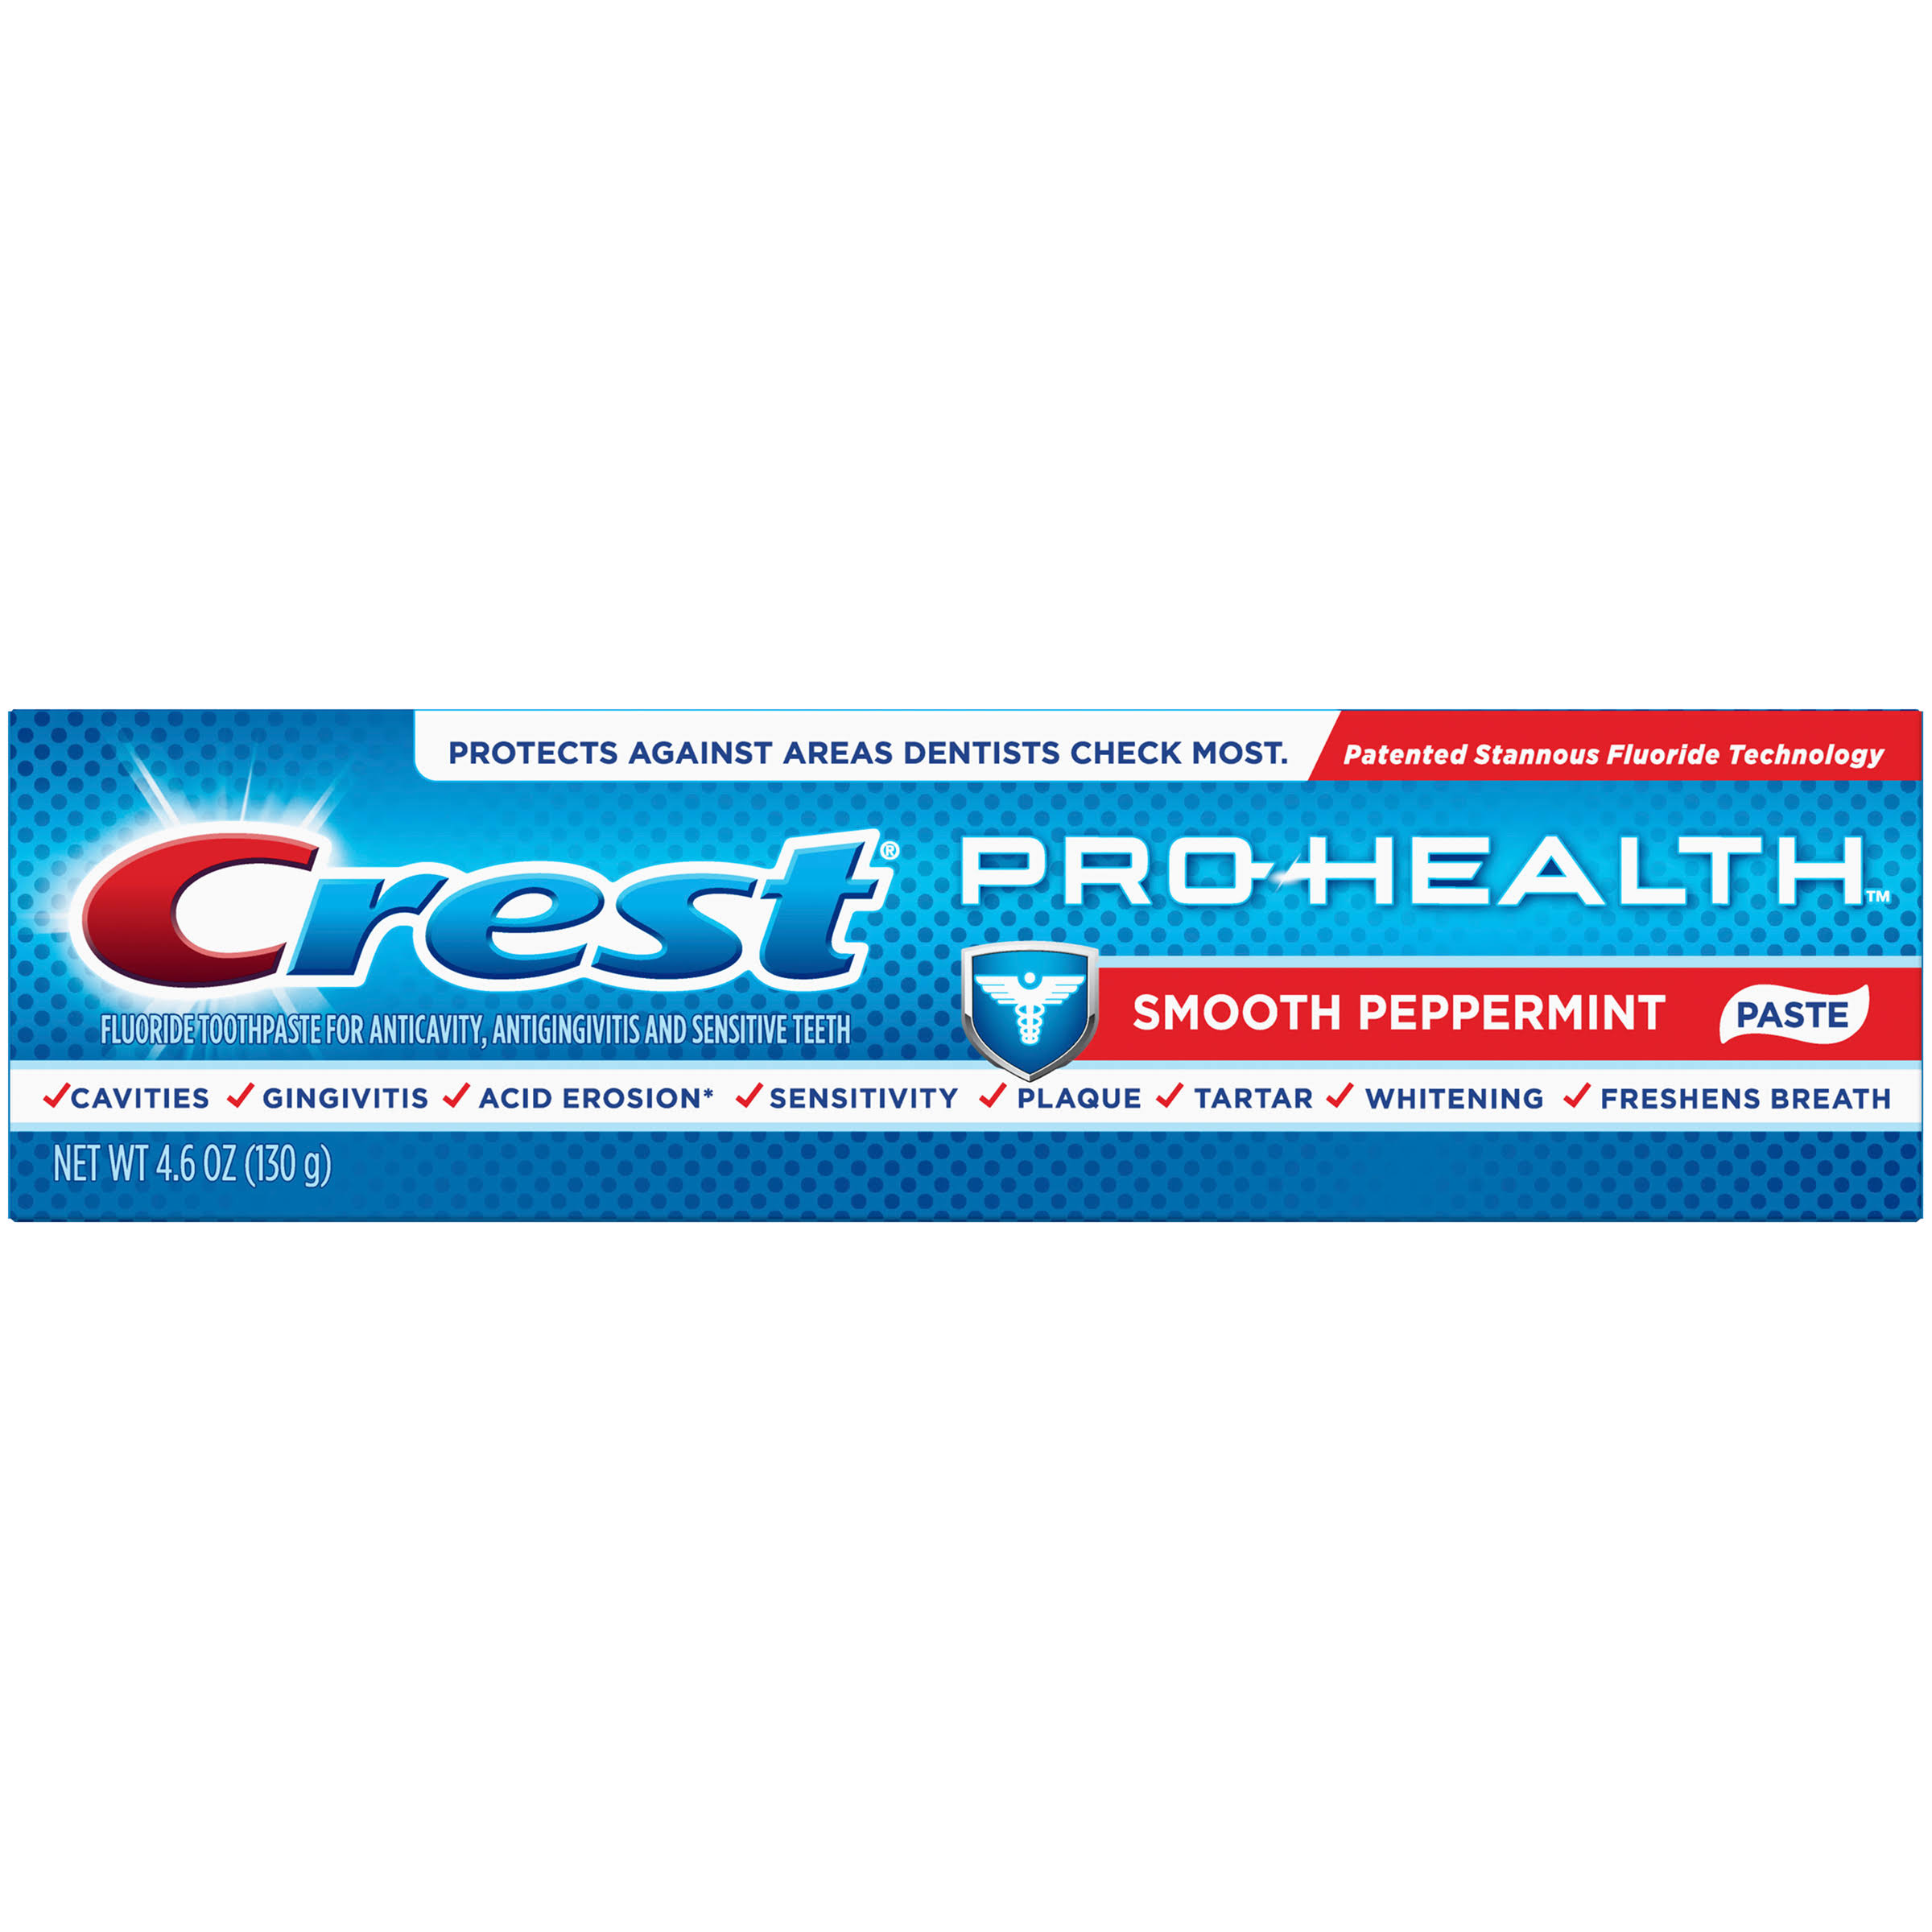 Crest Pro Health Toothpaste Smooth Peppermint - 4.6oz